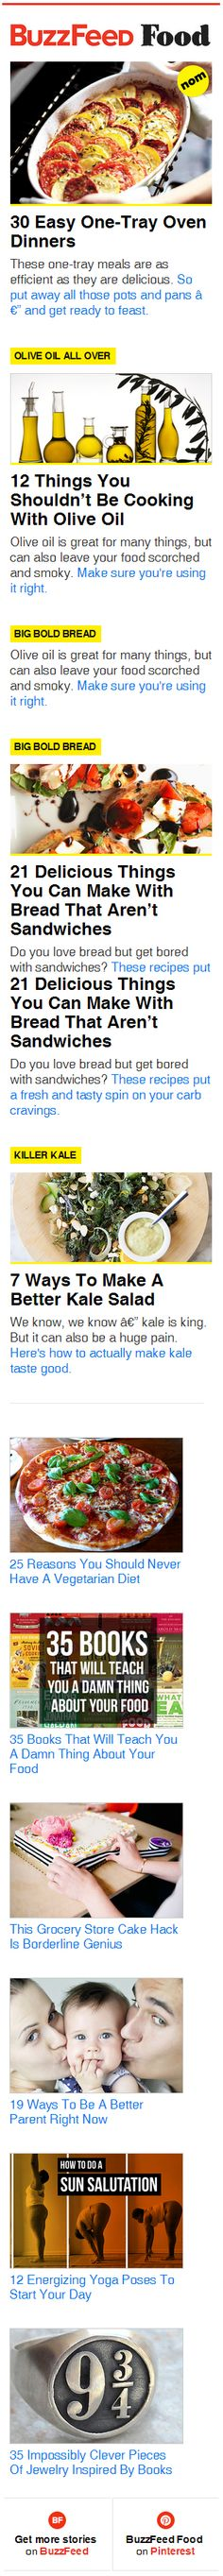 Delicious looking responsive email design from BuzzFeed Food